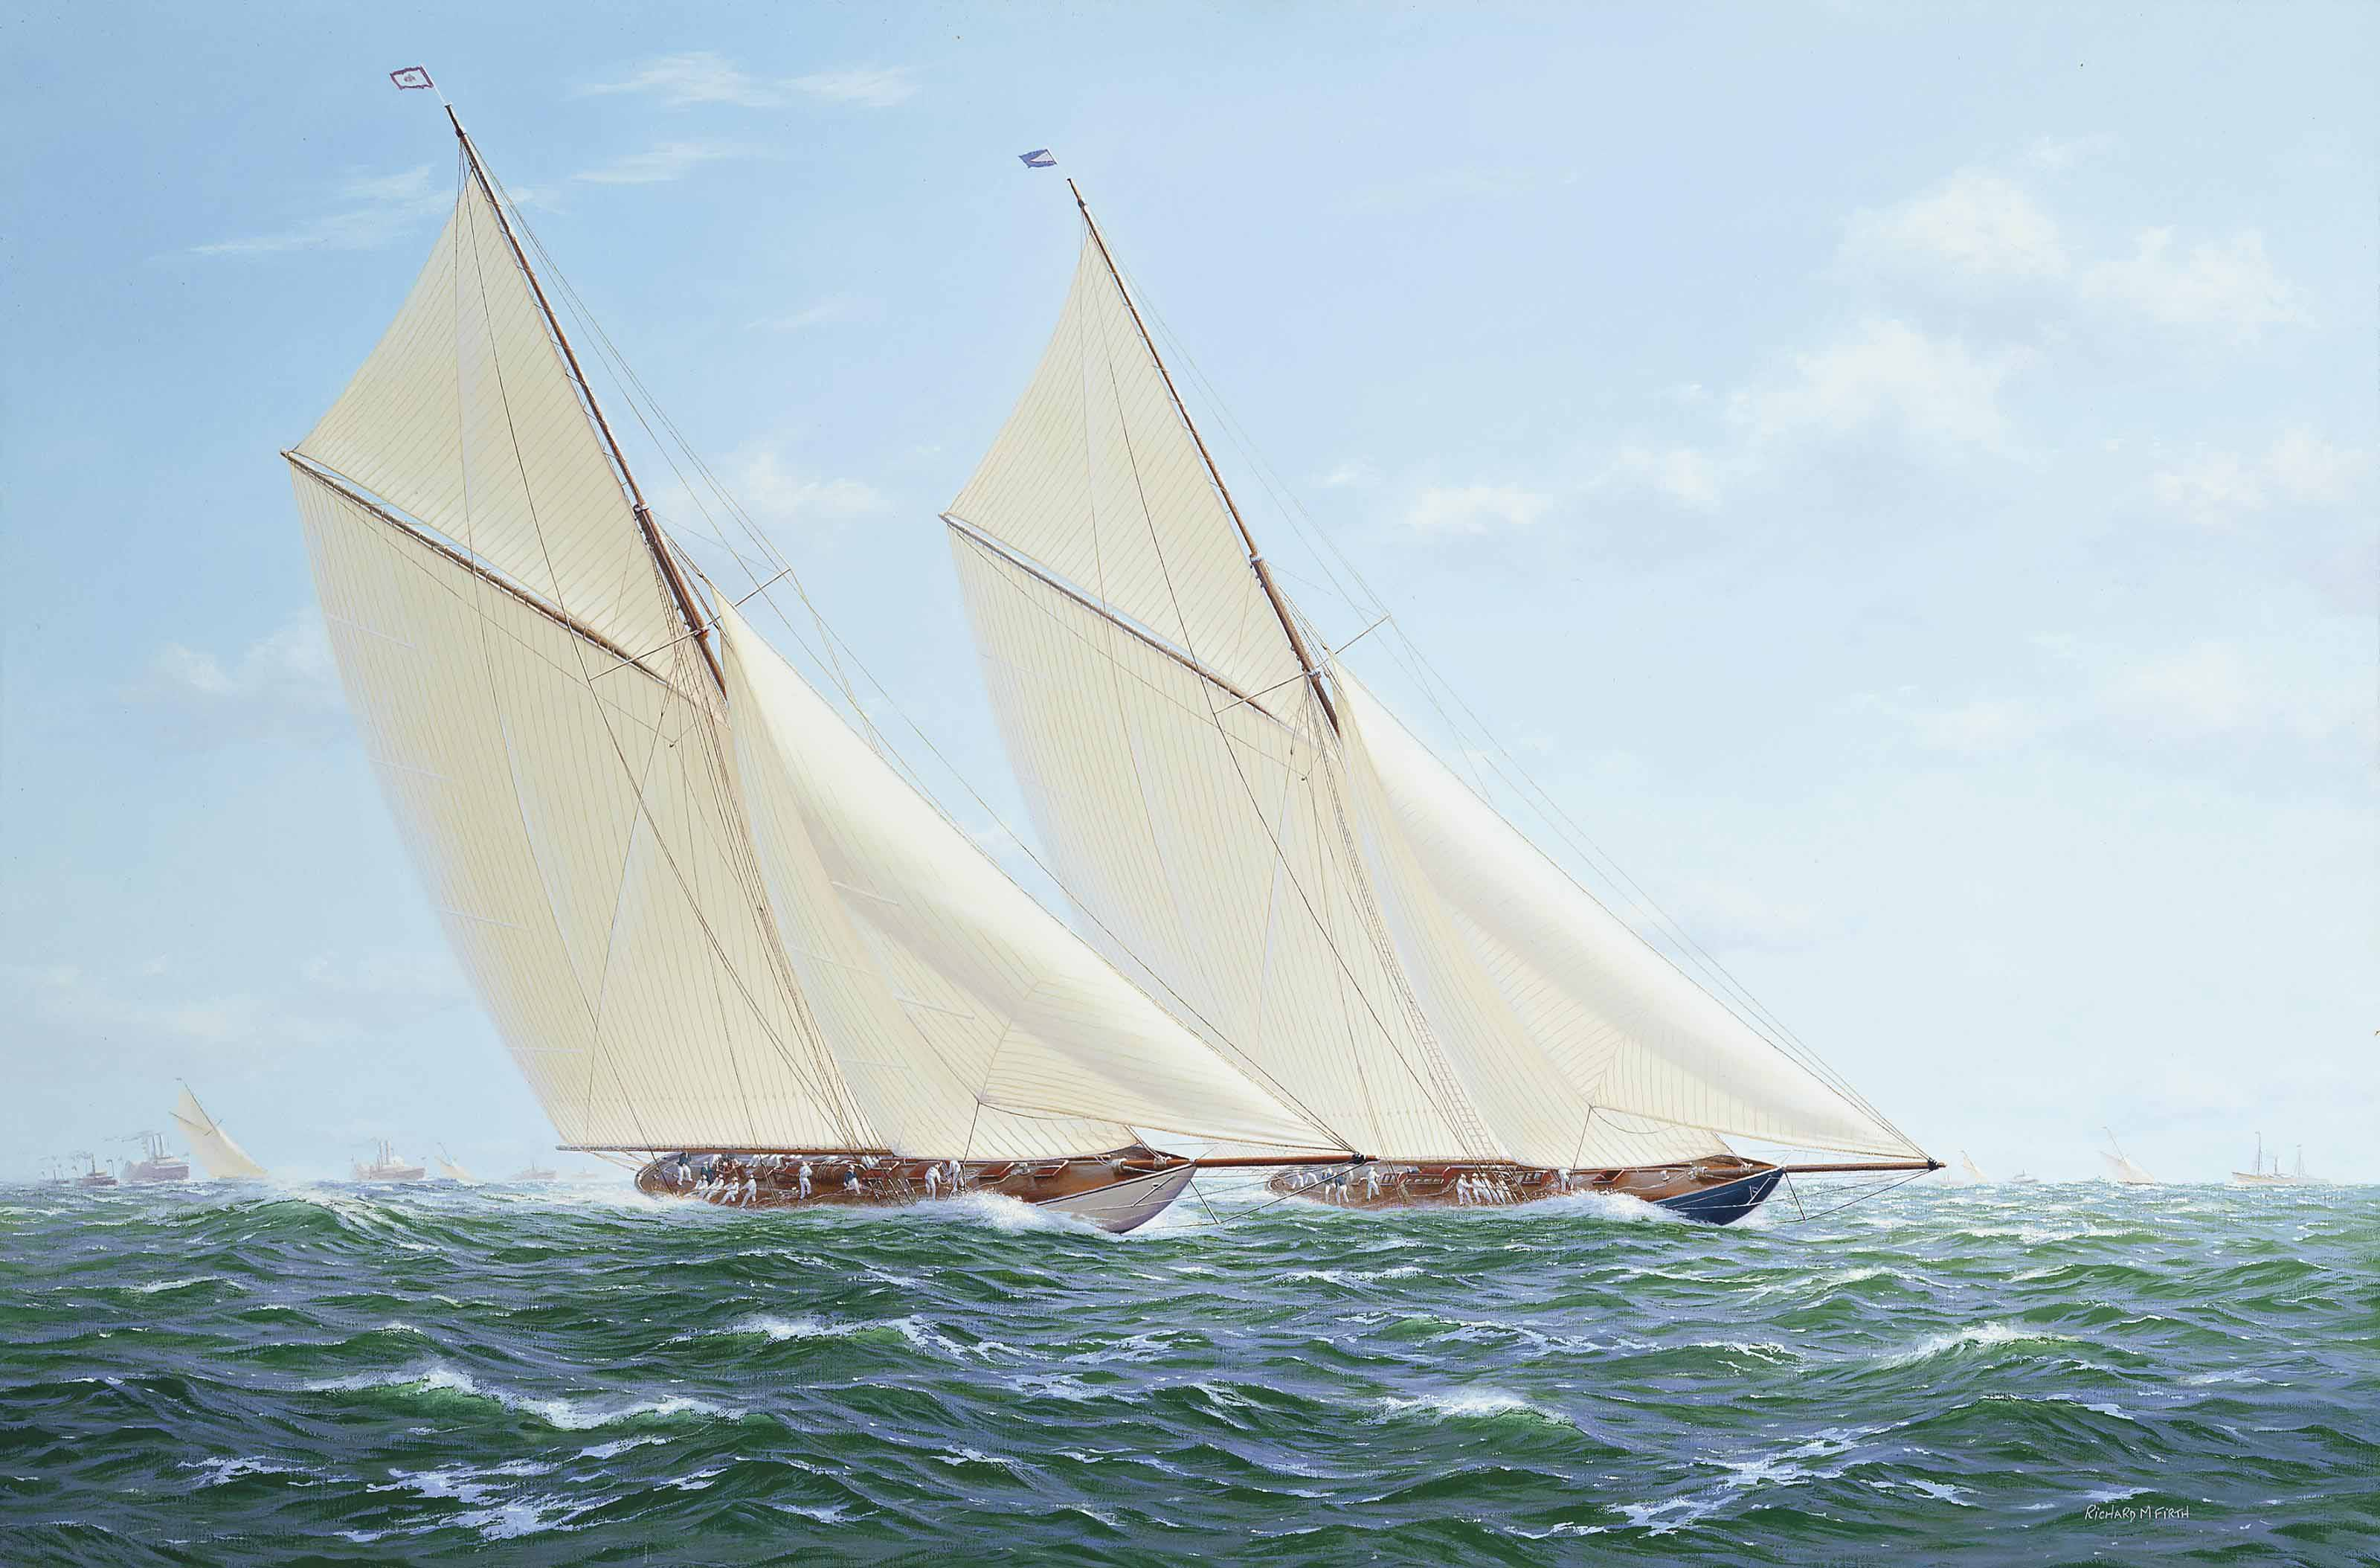 Vigilant and Valkyrie II on the windward leg, America's Cup, 1893